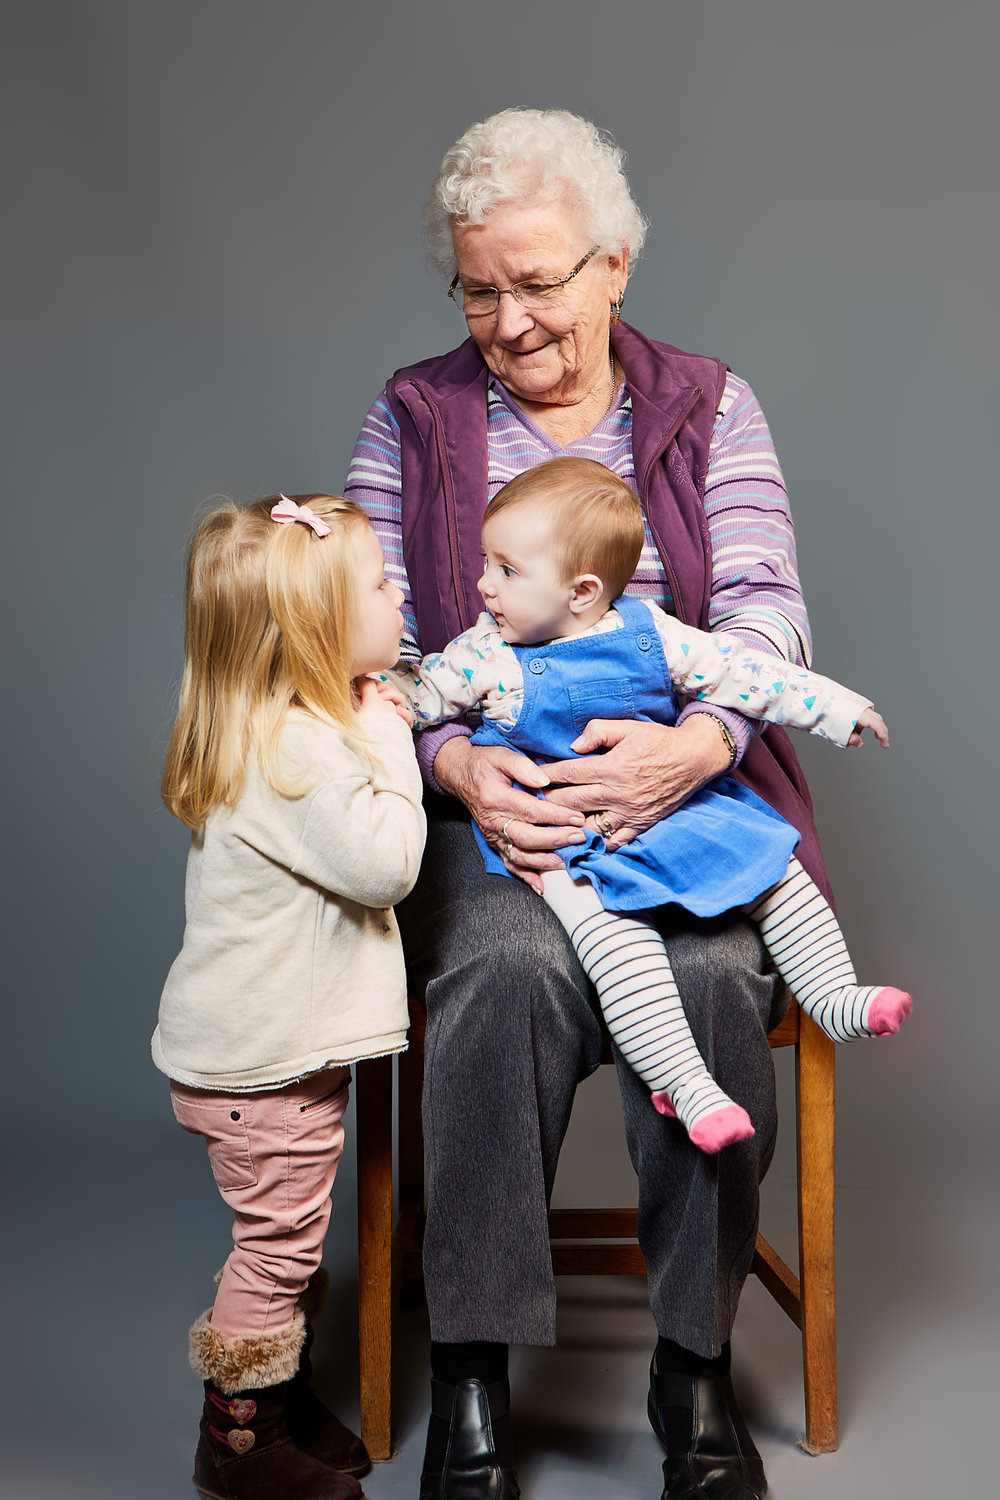 Family portrait photography Lincolnshire 9.jpg